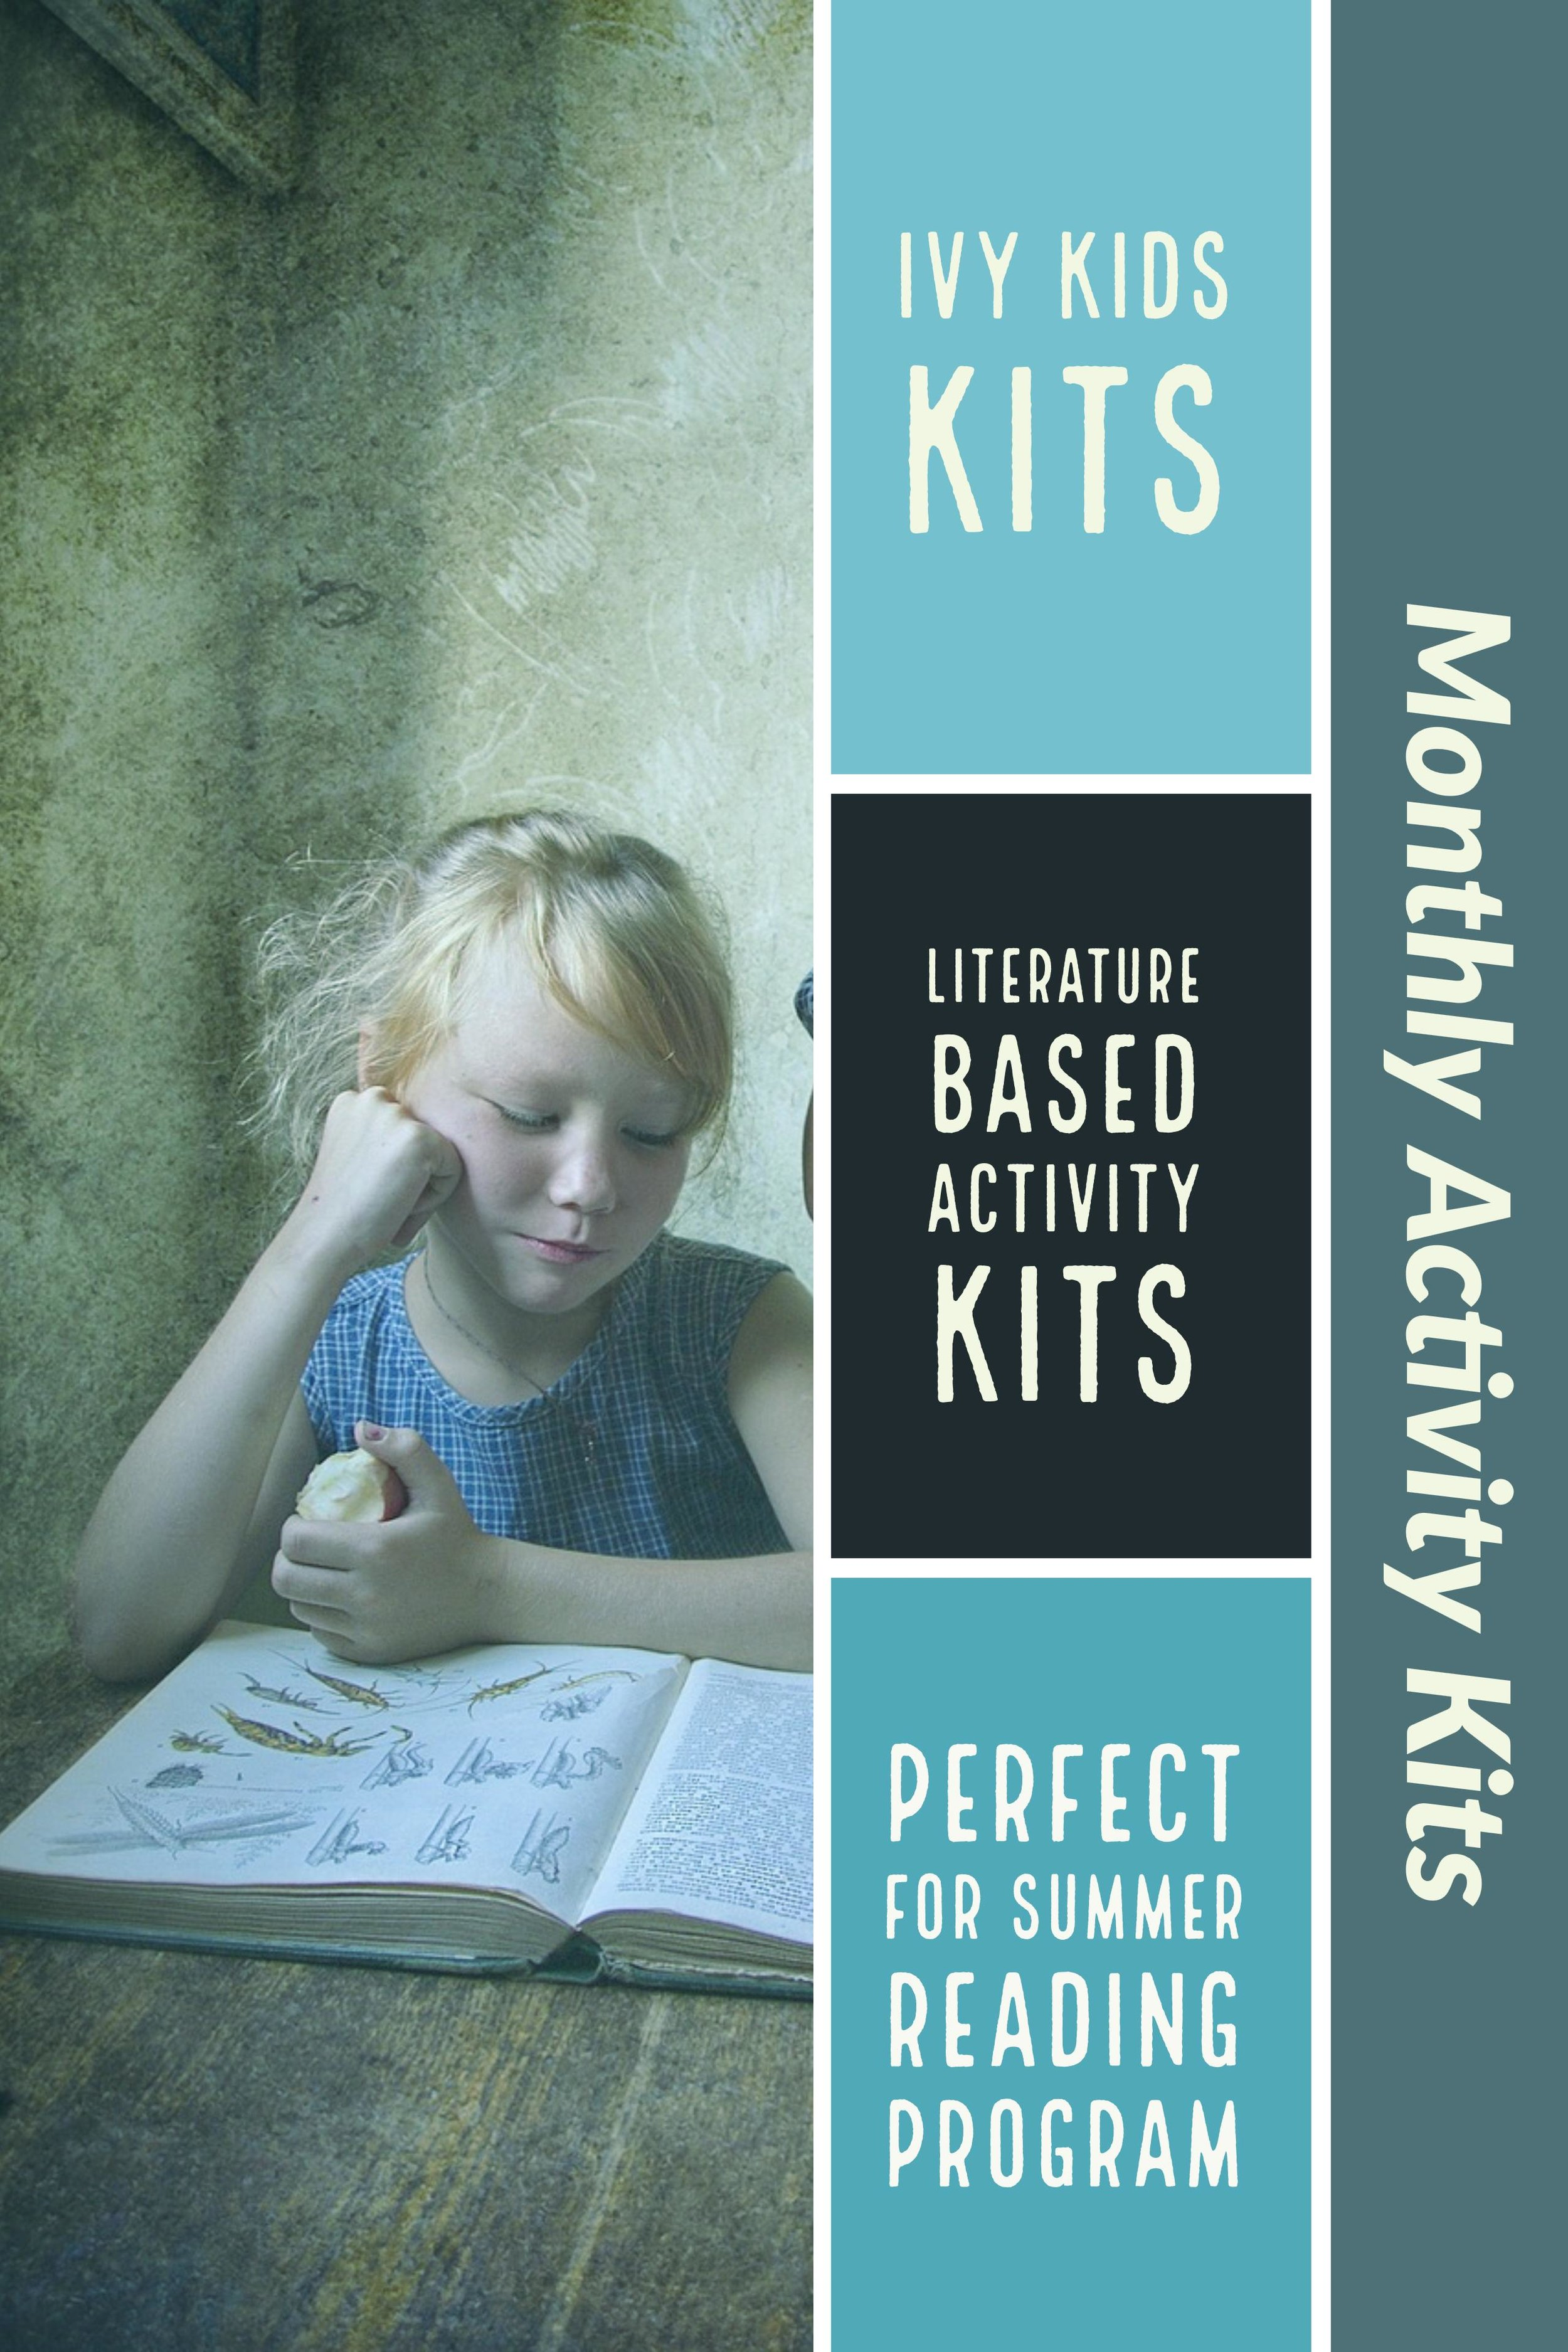 Ivy Kids | Monthly Activity Kits for Kids